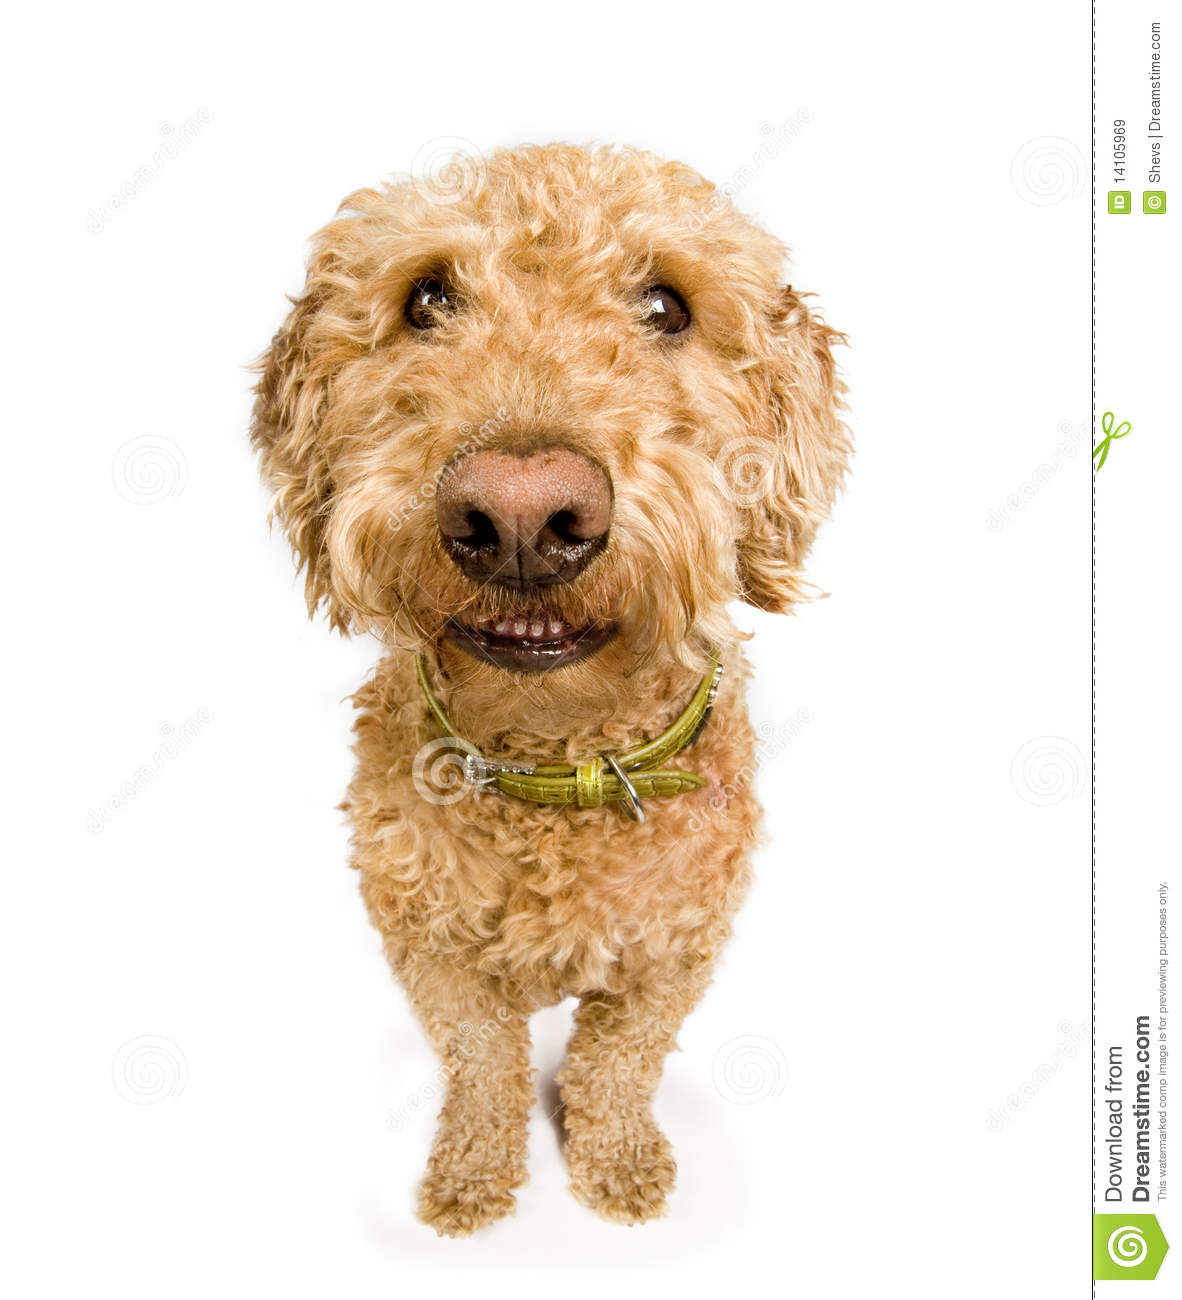 Dog with a smile